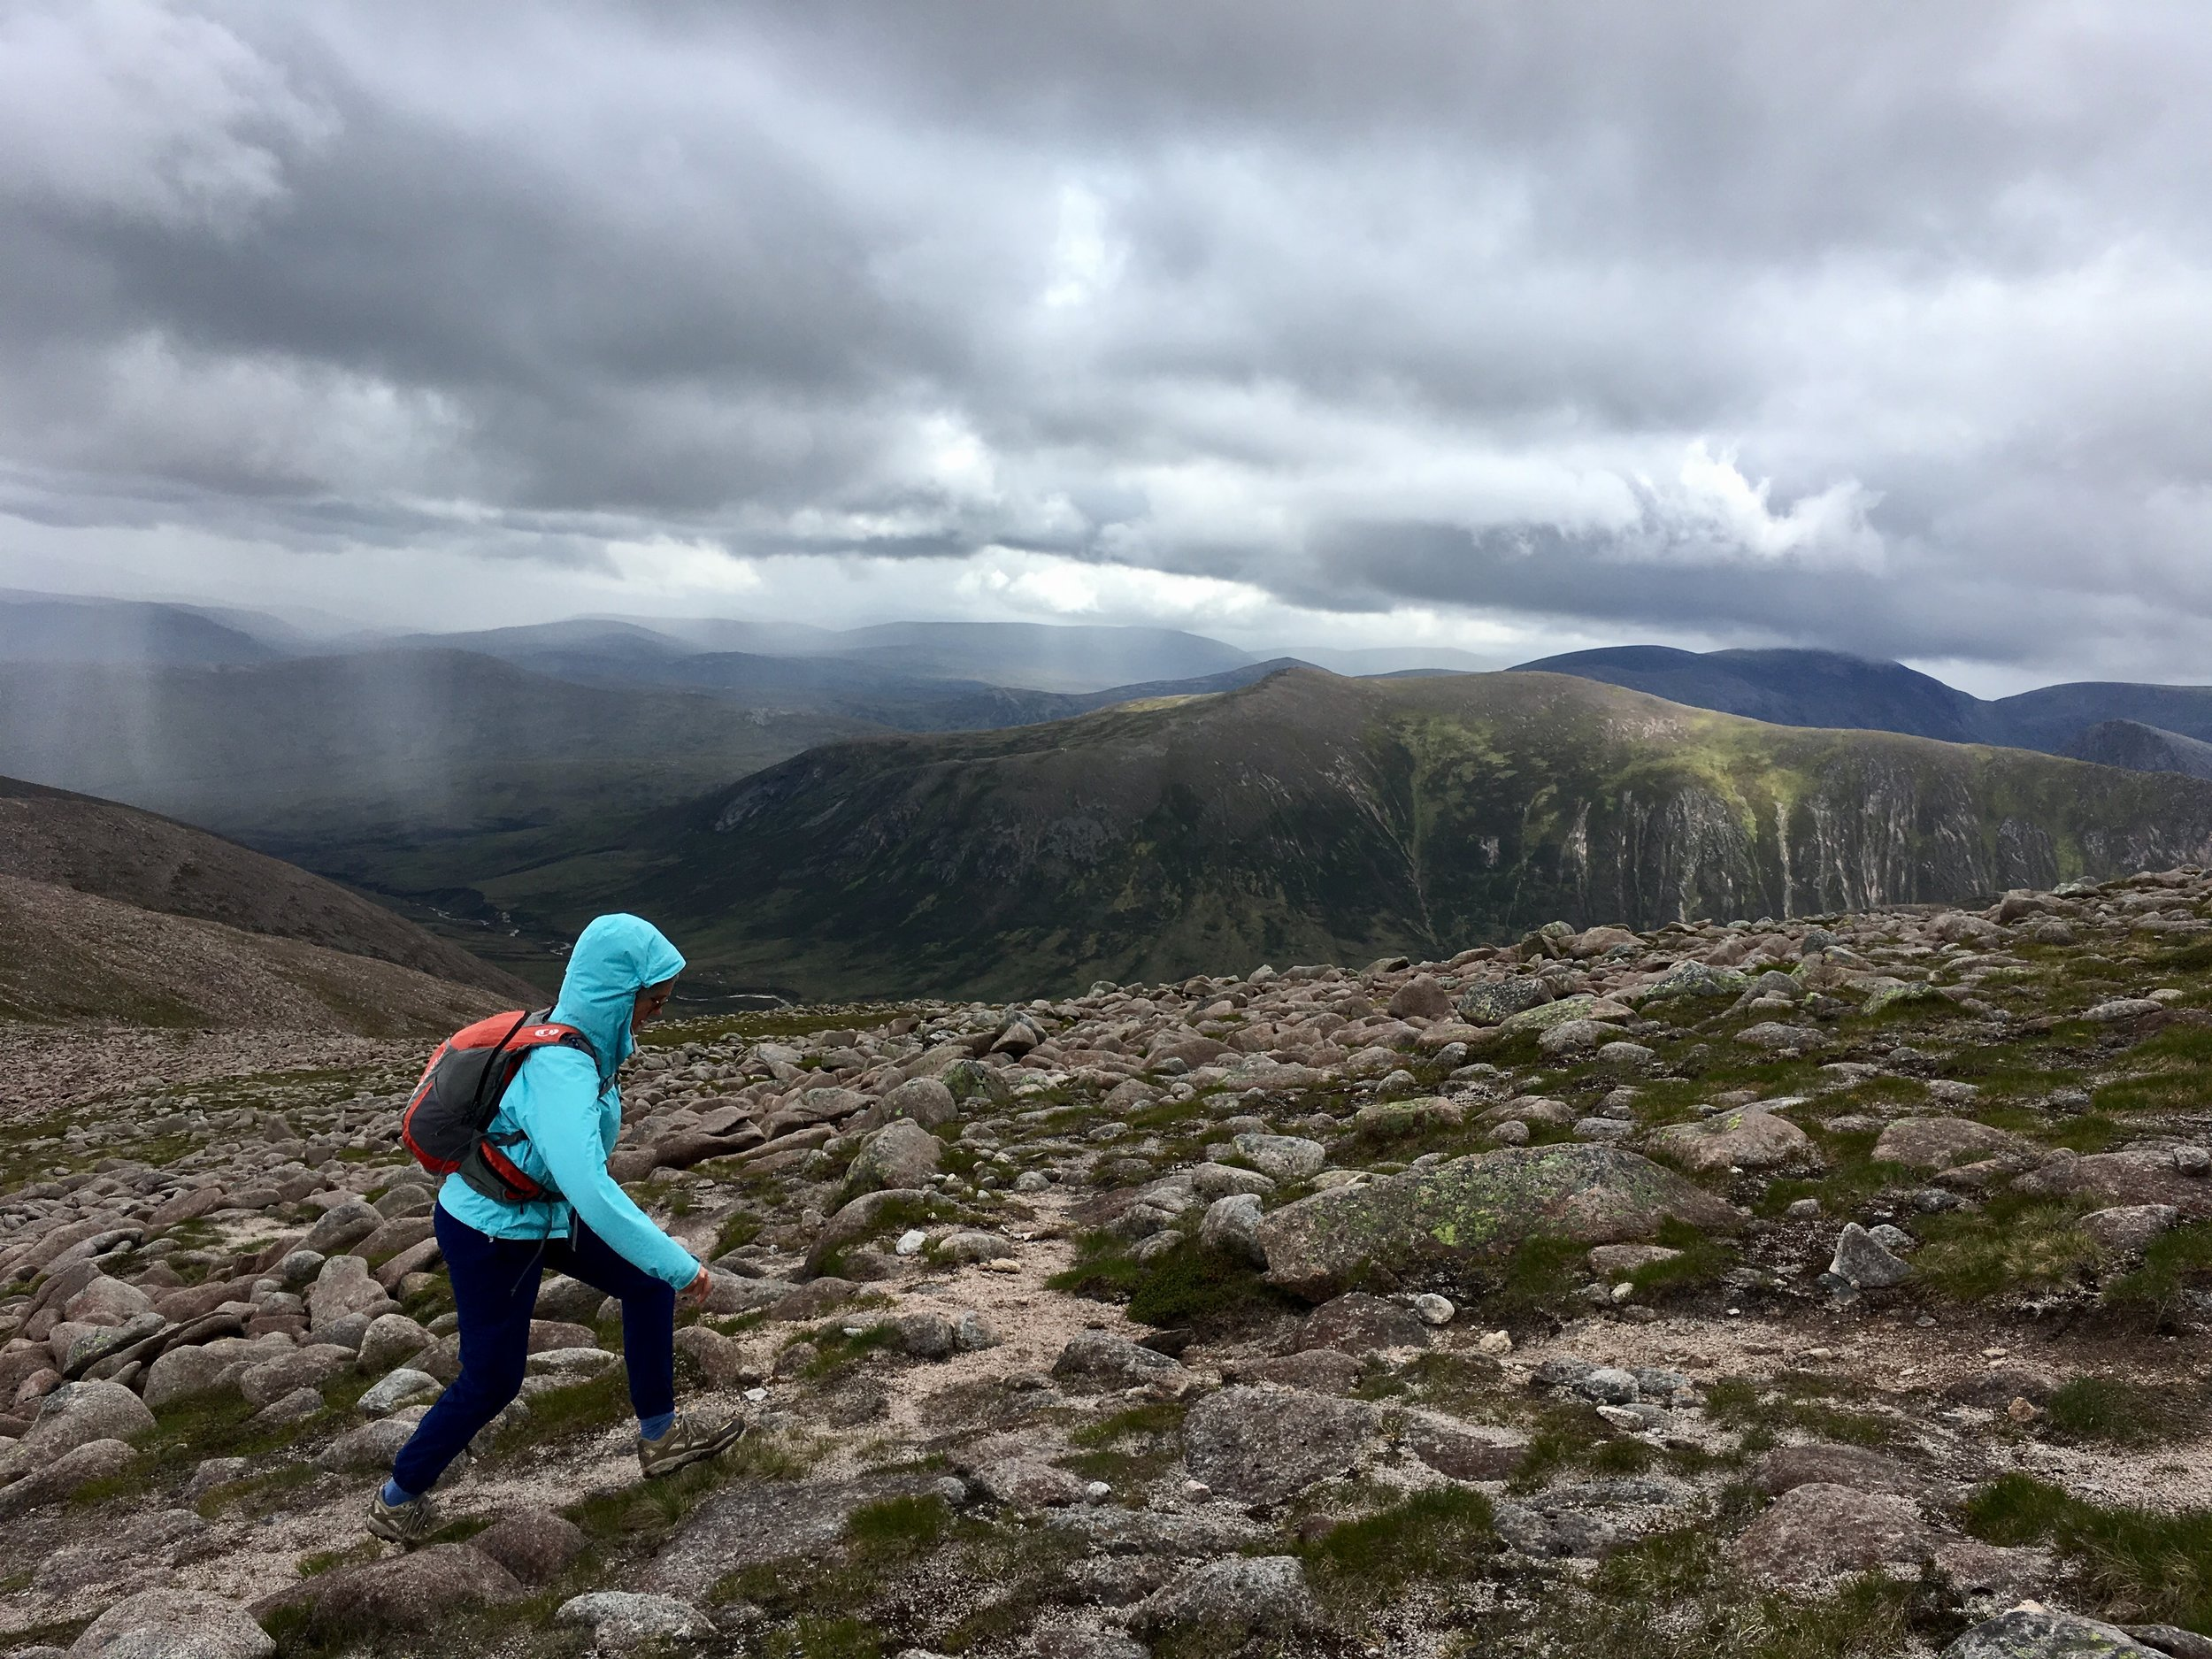 On our way up Derry Cairngorm